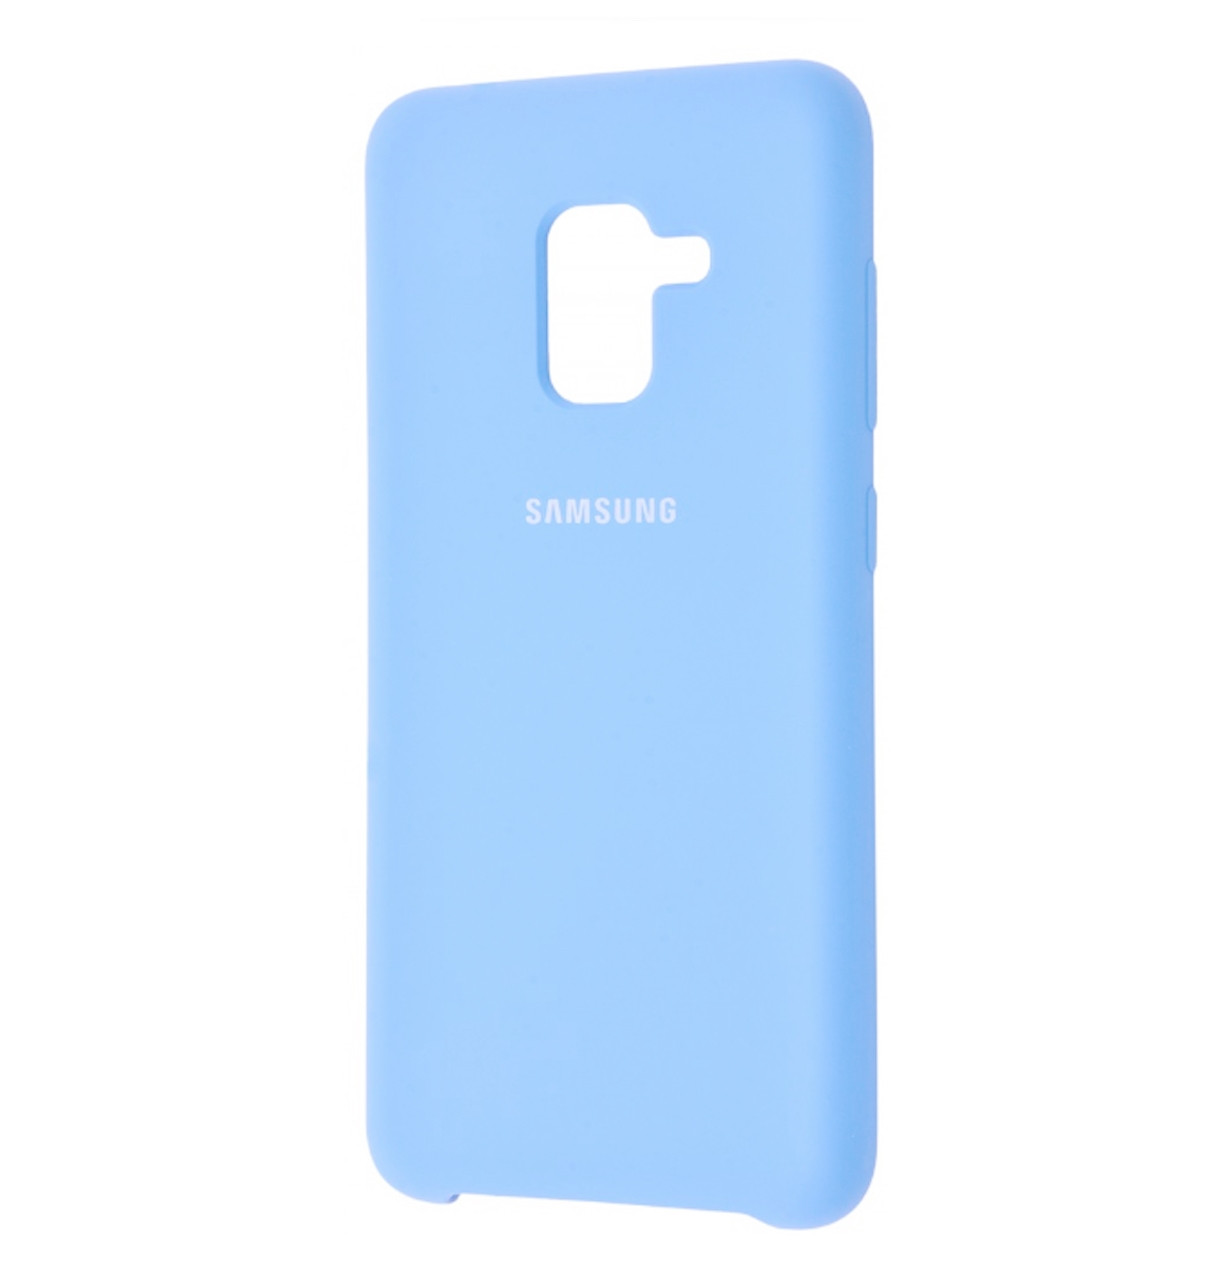 Чехол-накладка Original Silicone case на Samsung Galaxy A8 (2018) SM-A530F Light Blue